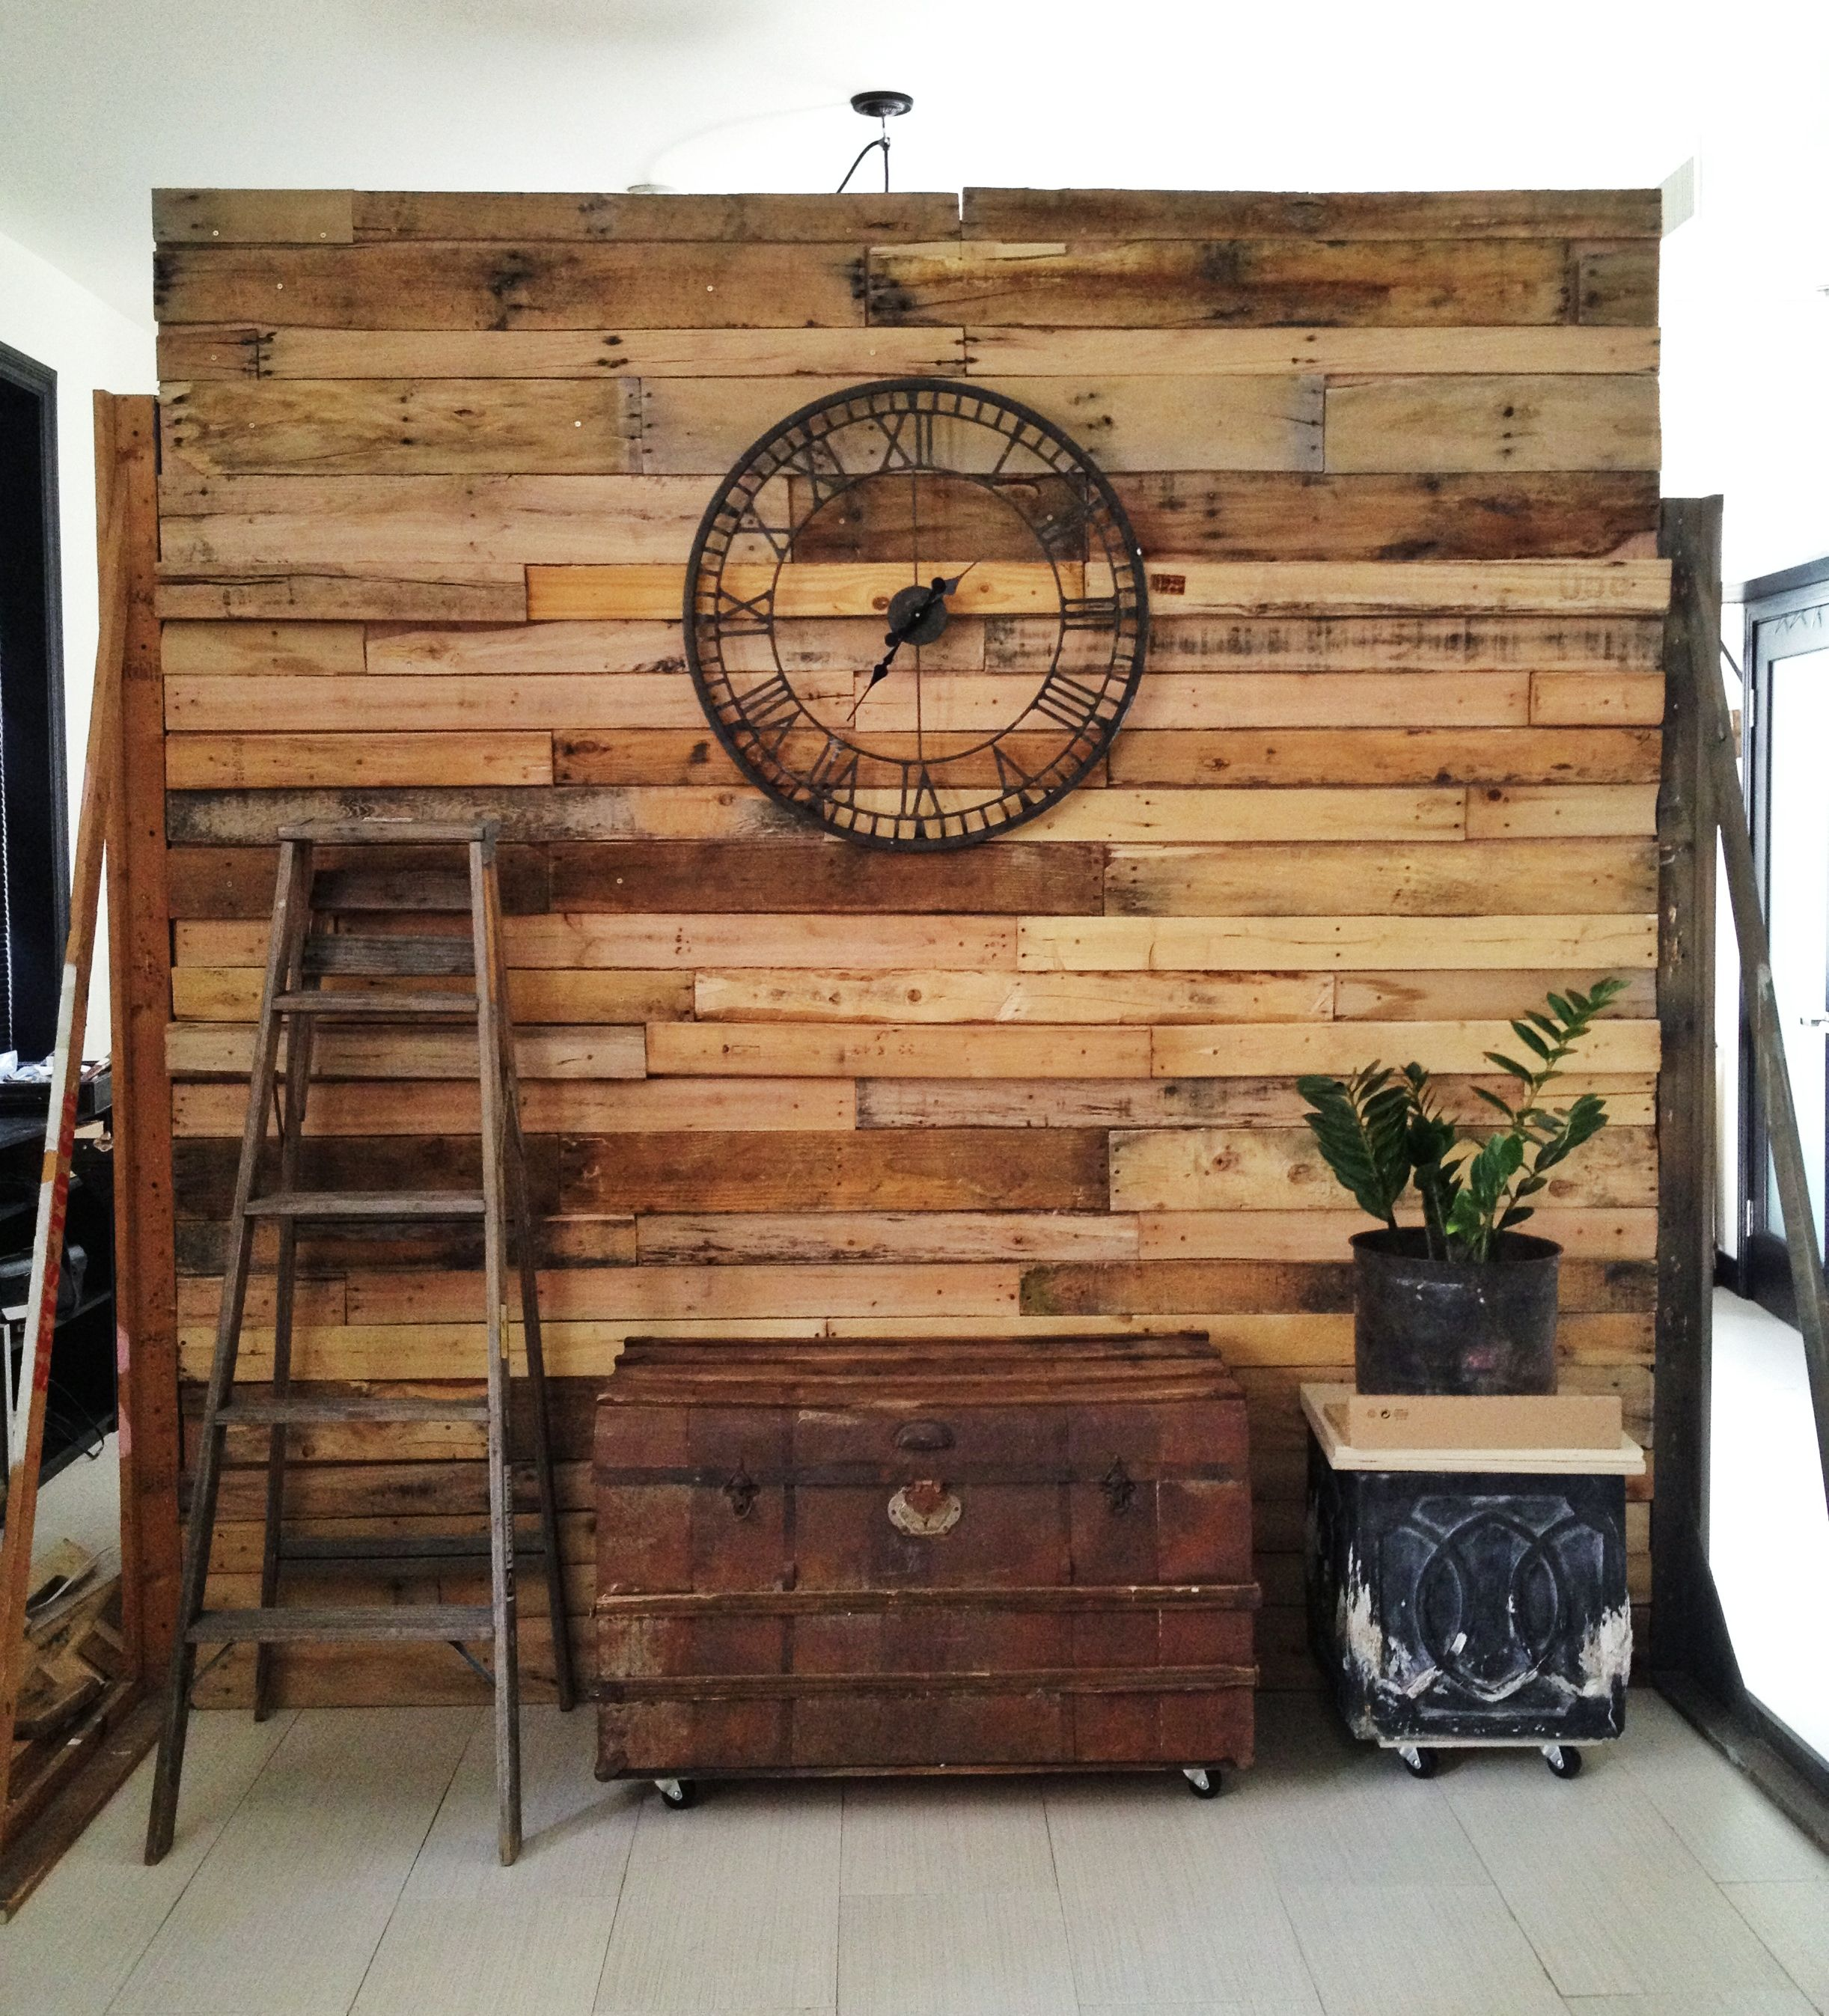 Trennwand Aus Holz Im Schlafzimmer: My New Wall Partition To Separate My Bedroom. Used Pallet